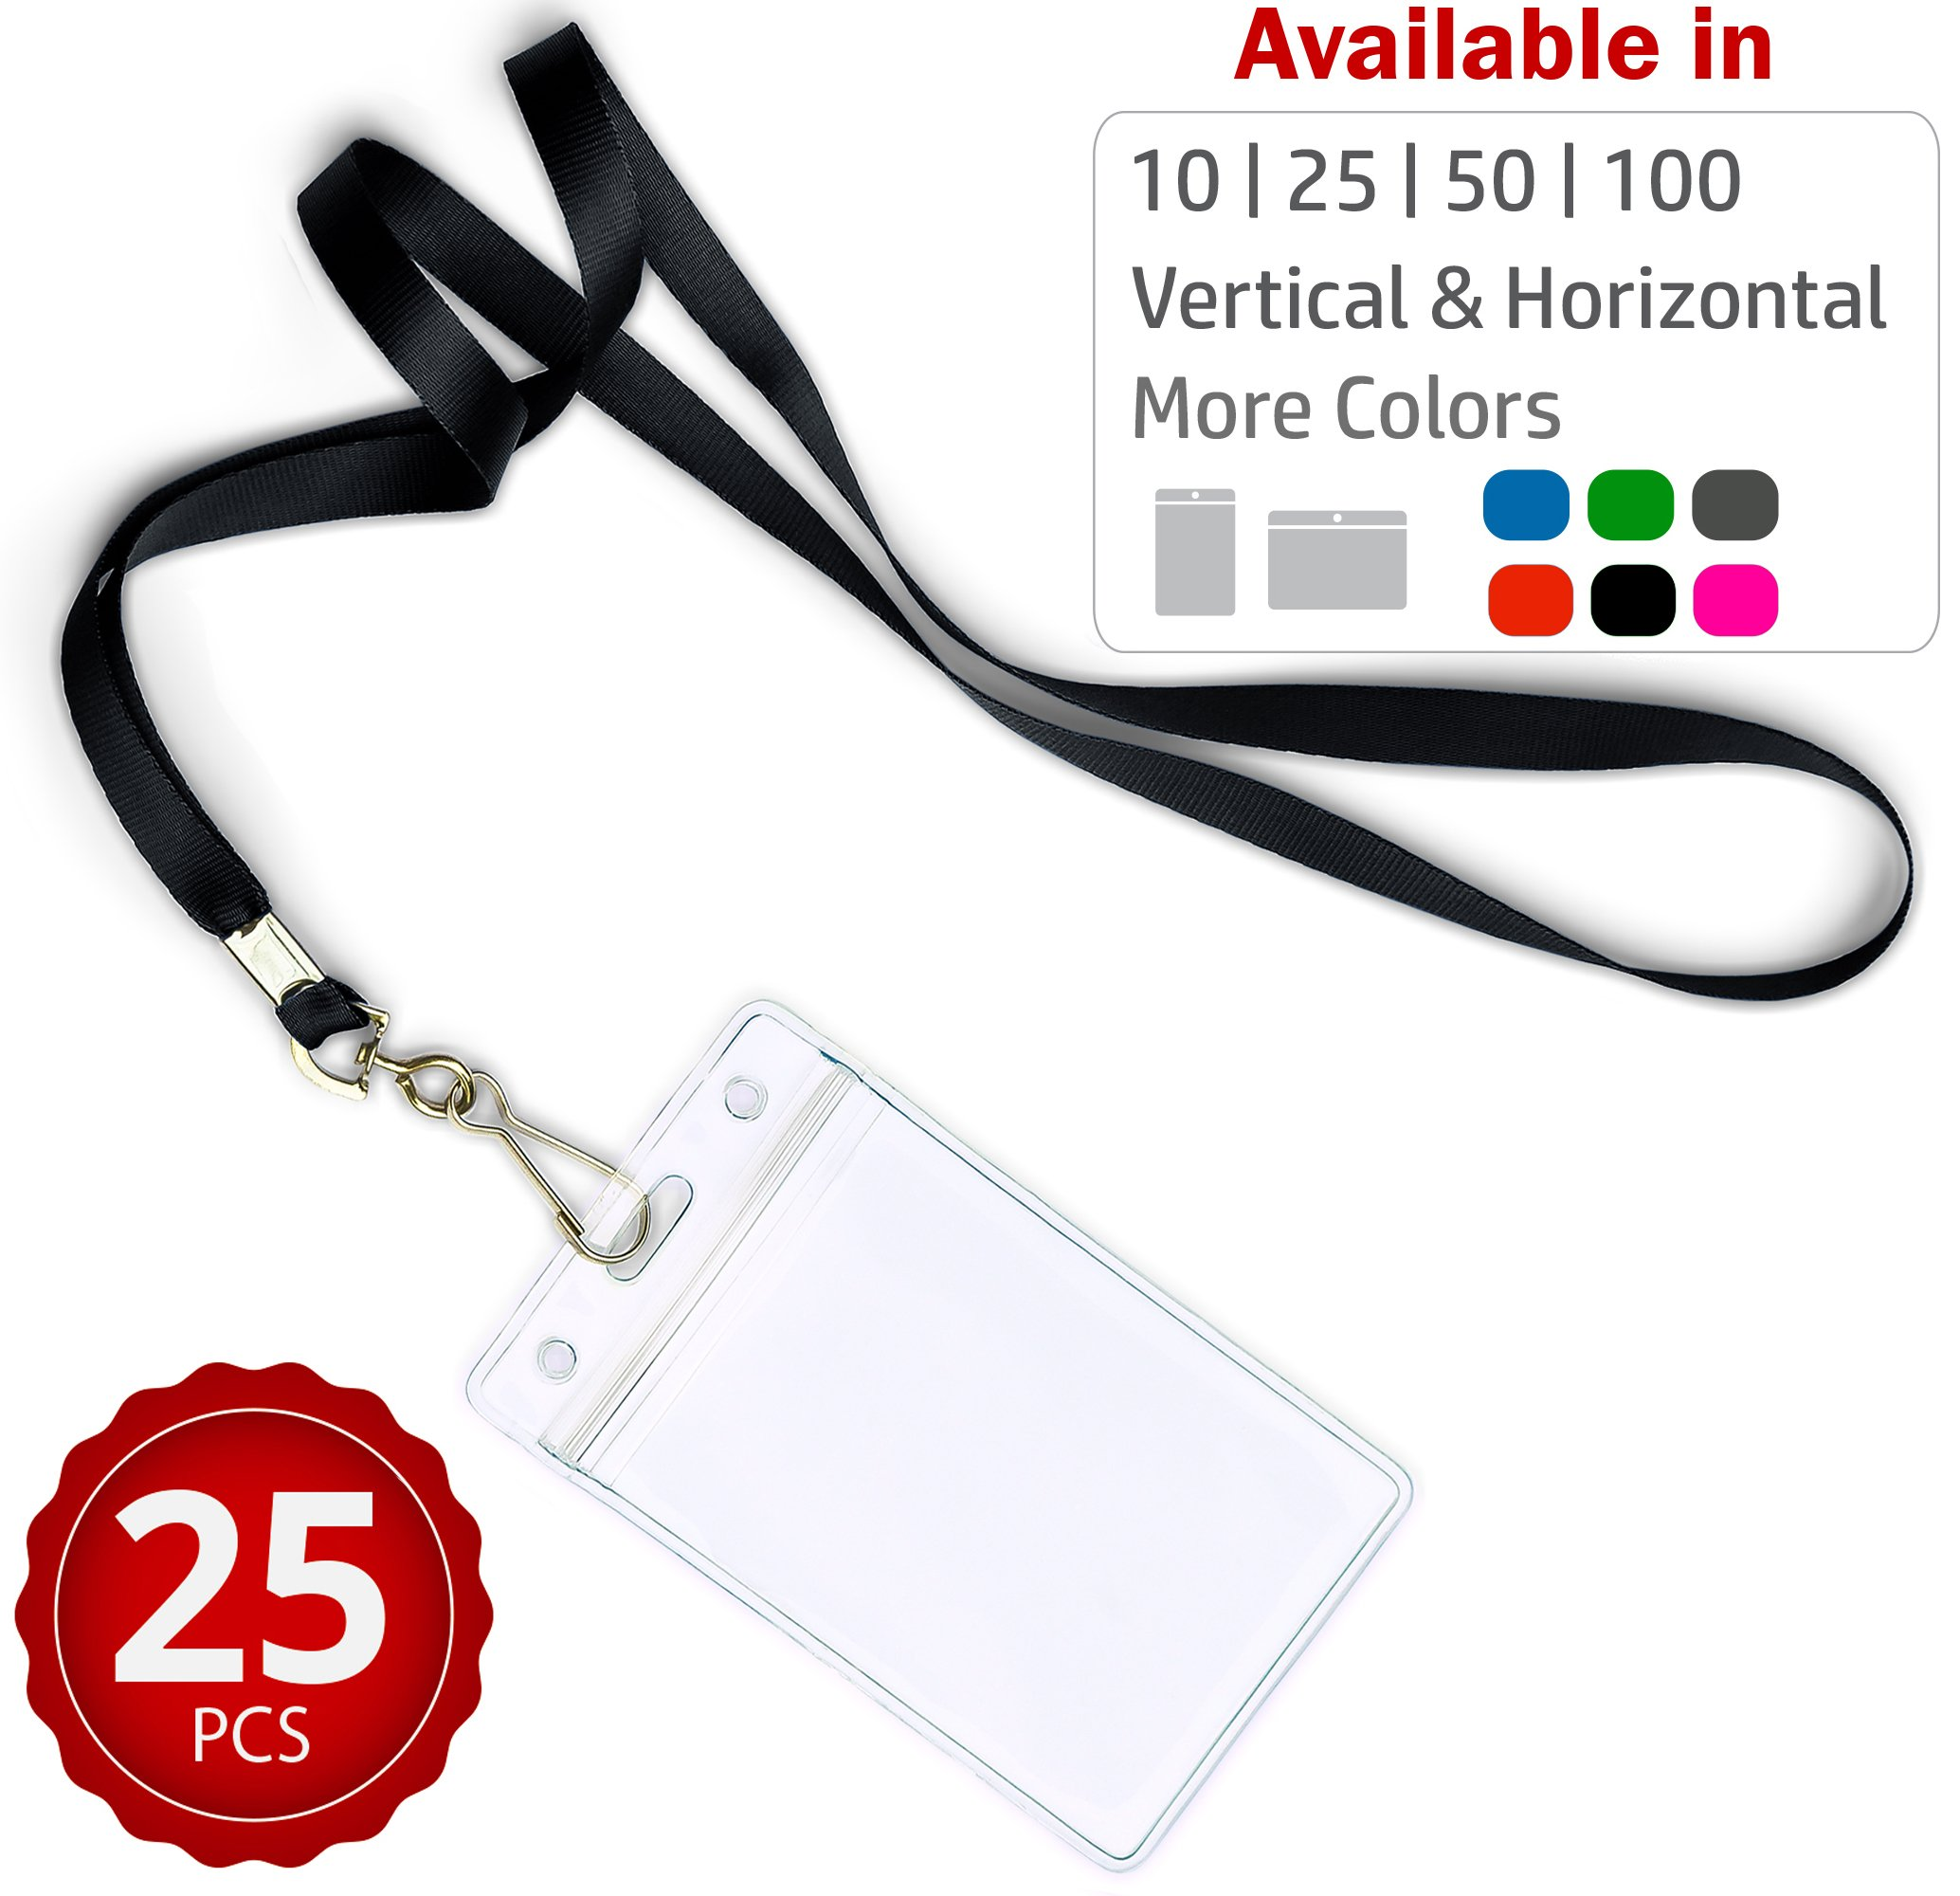 Durably Woven Lanyards & Vertical ID Badge Holders ~Premium Quality, Waterproof & Dustproof ~ For Moms, Teachers, Tours, Events, Businesses, Cruises & More (25 Pack, Black) by Stationery King